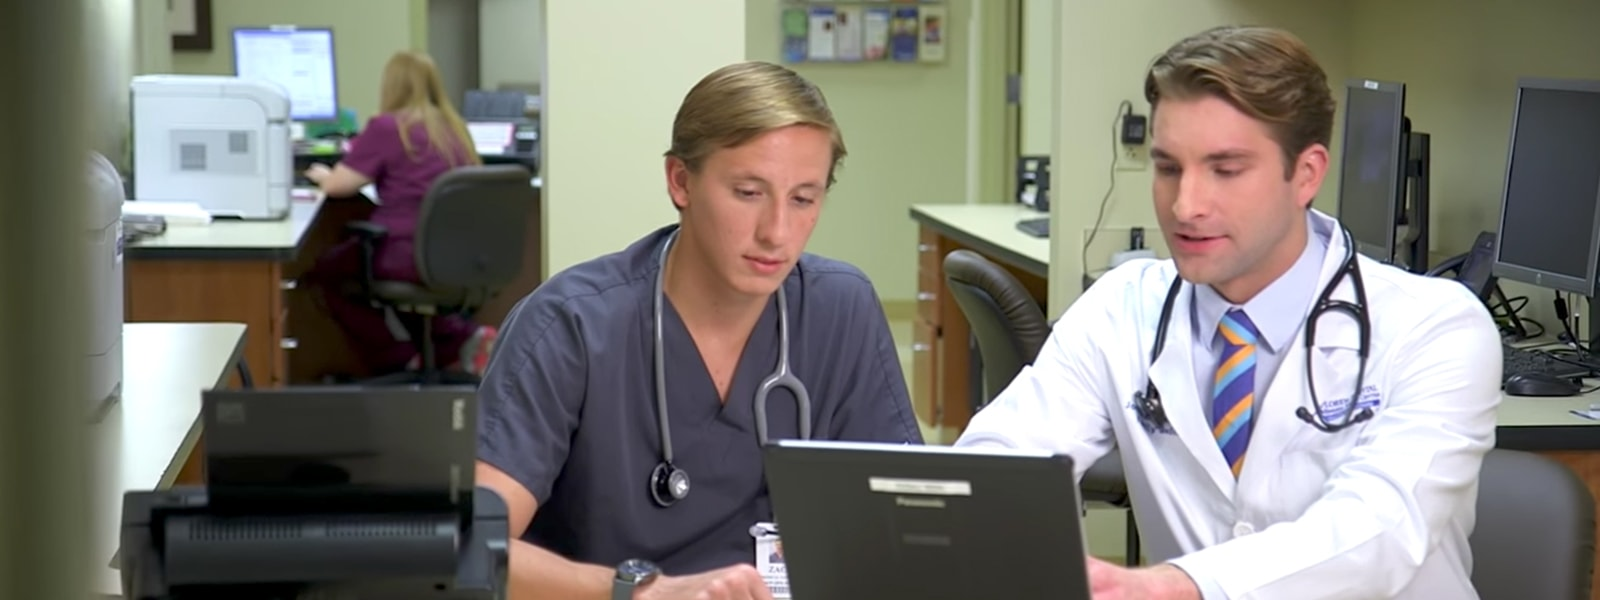 Two healthcare professionals working